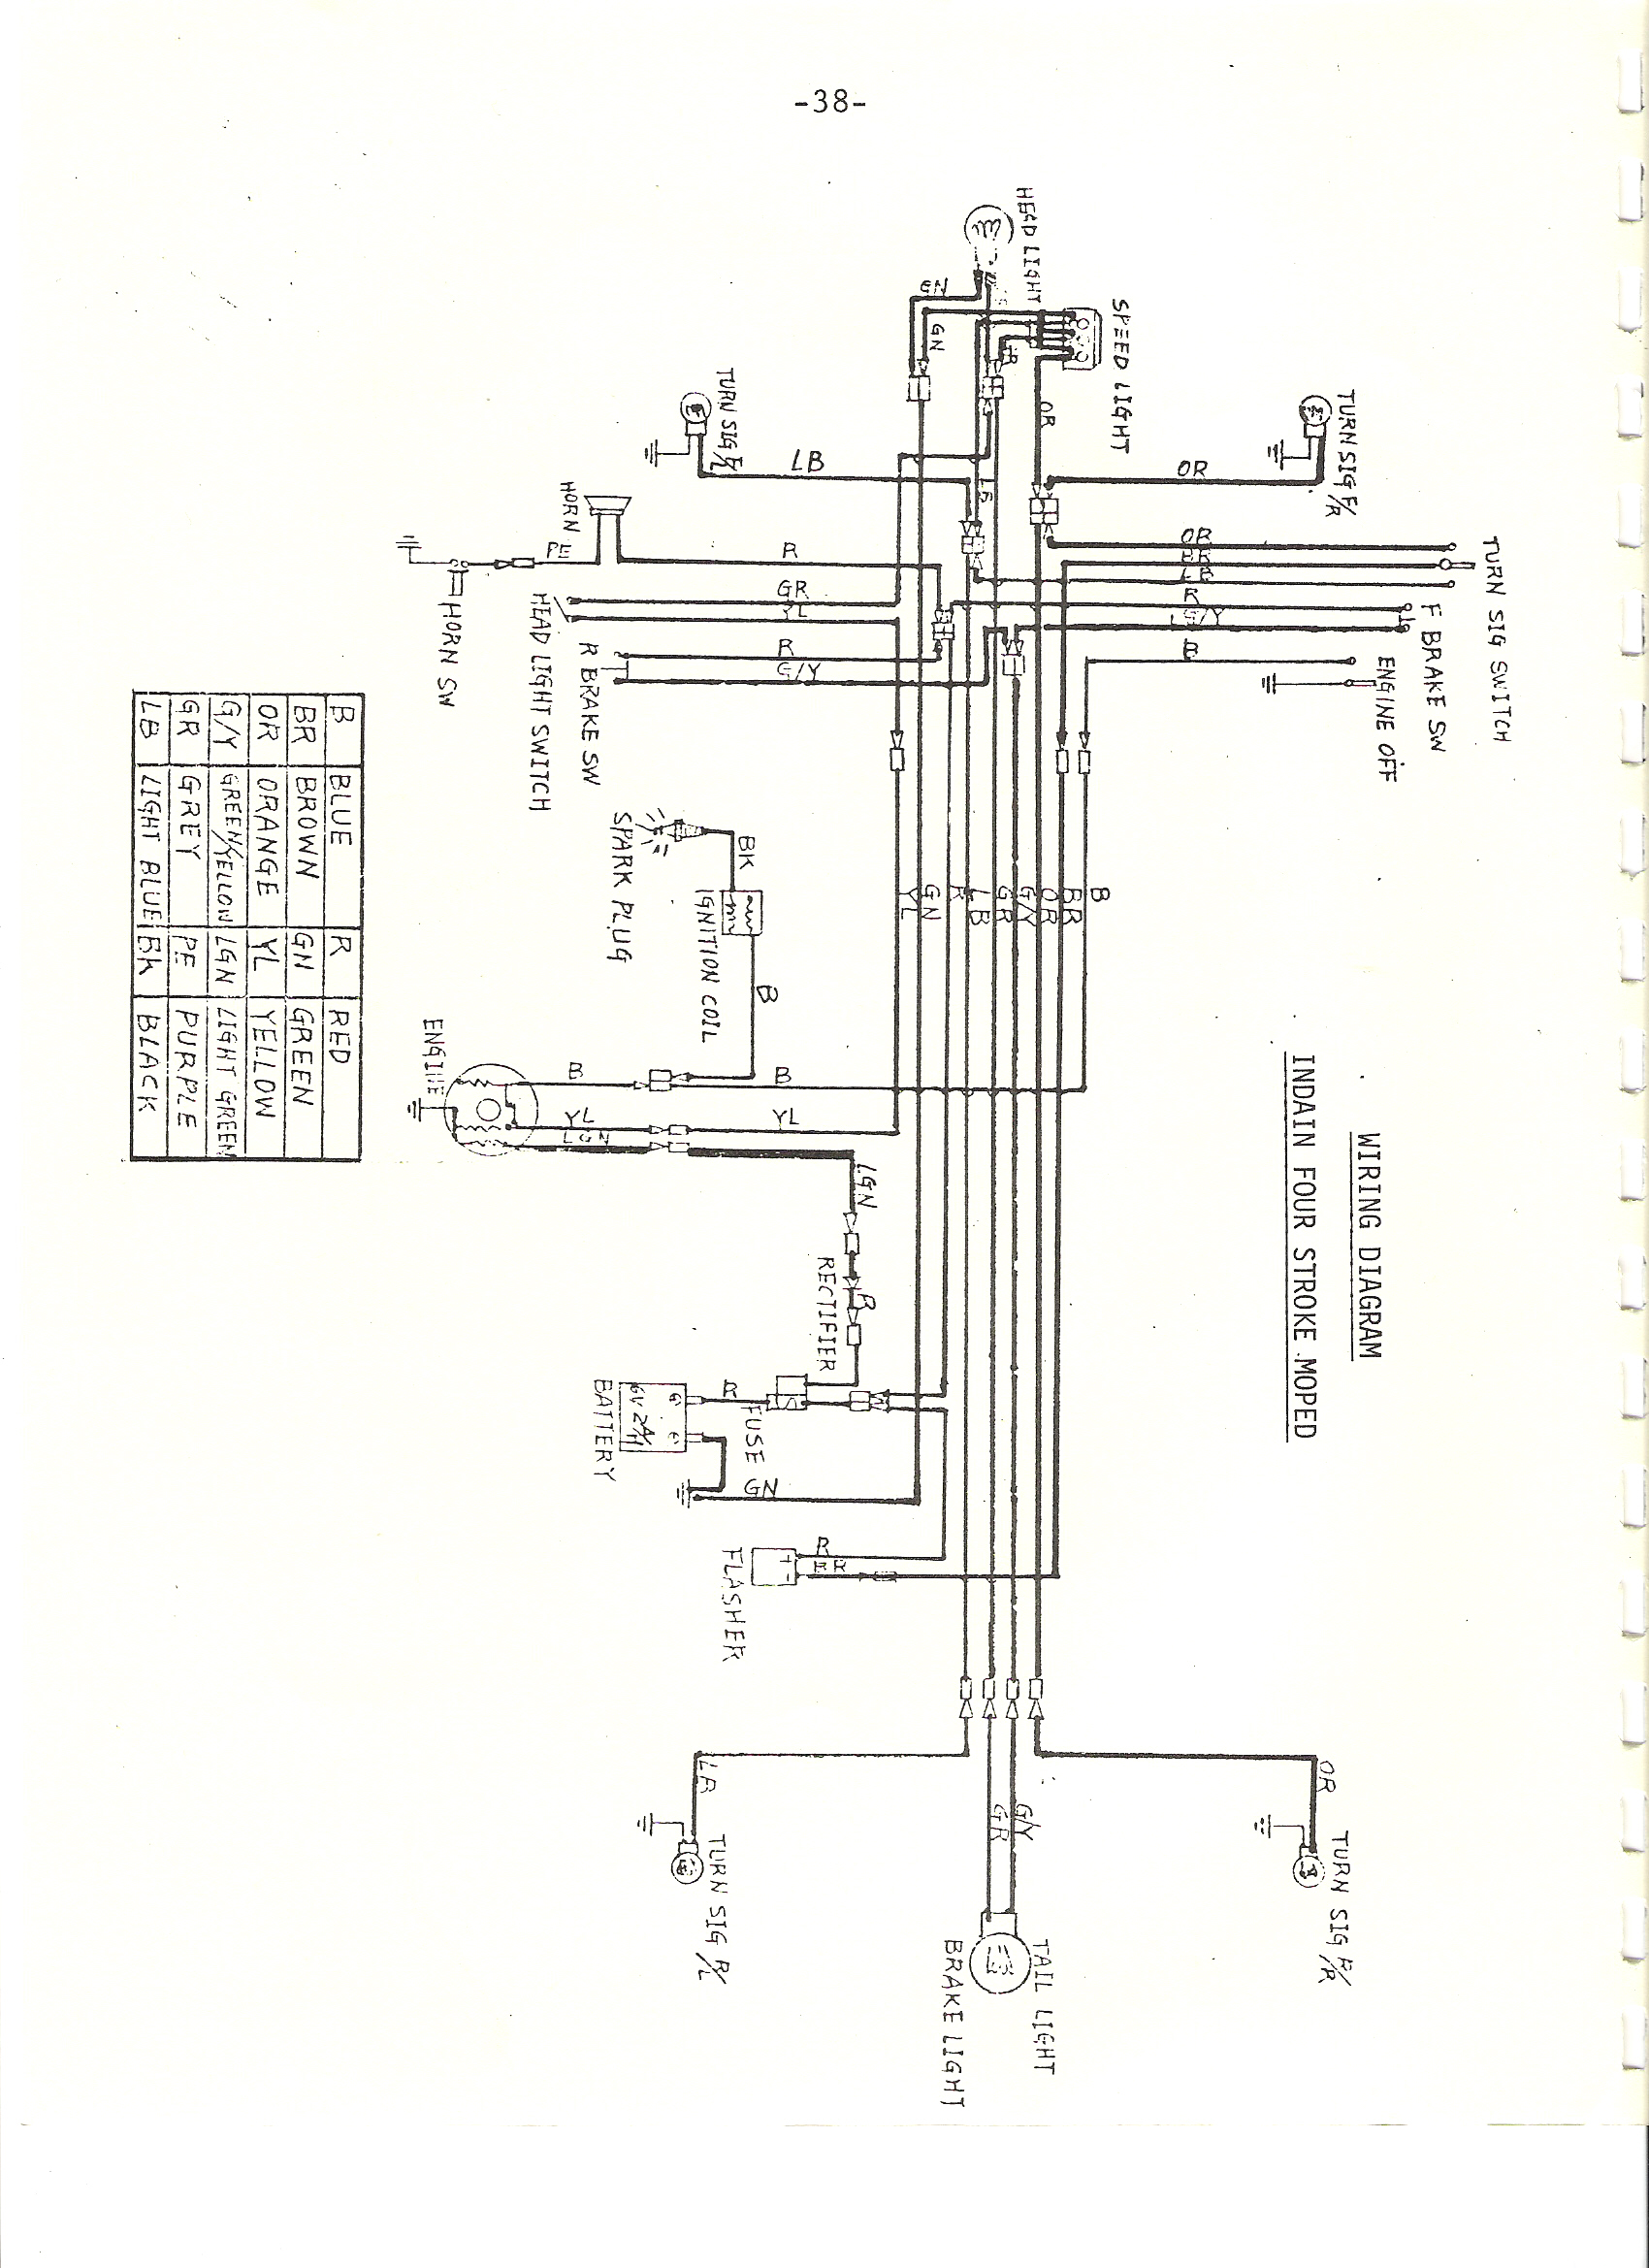 Re: 1980 Indian Chief wiring diagram? [by c64c64] — Moped Army